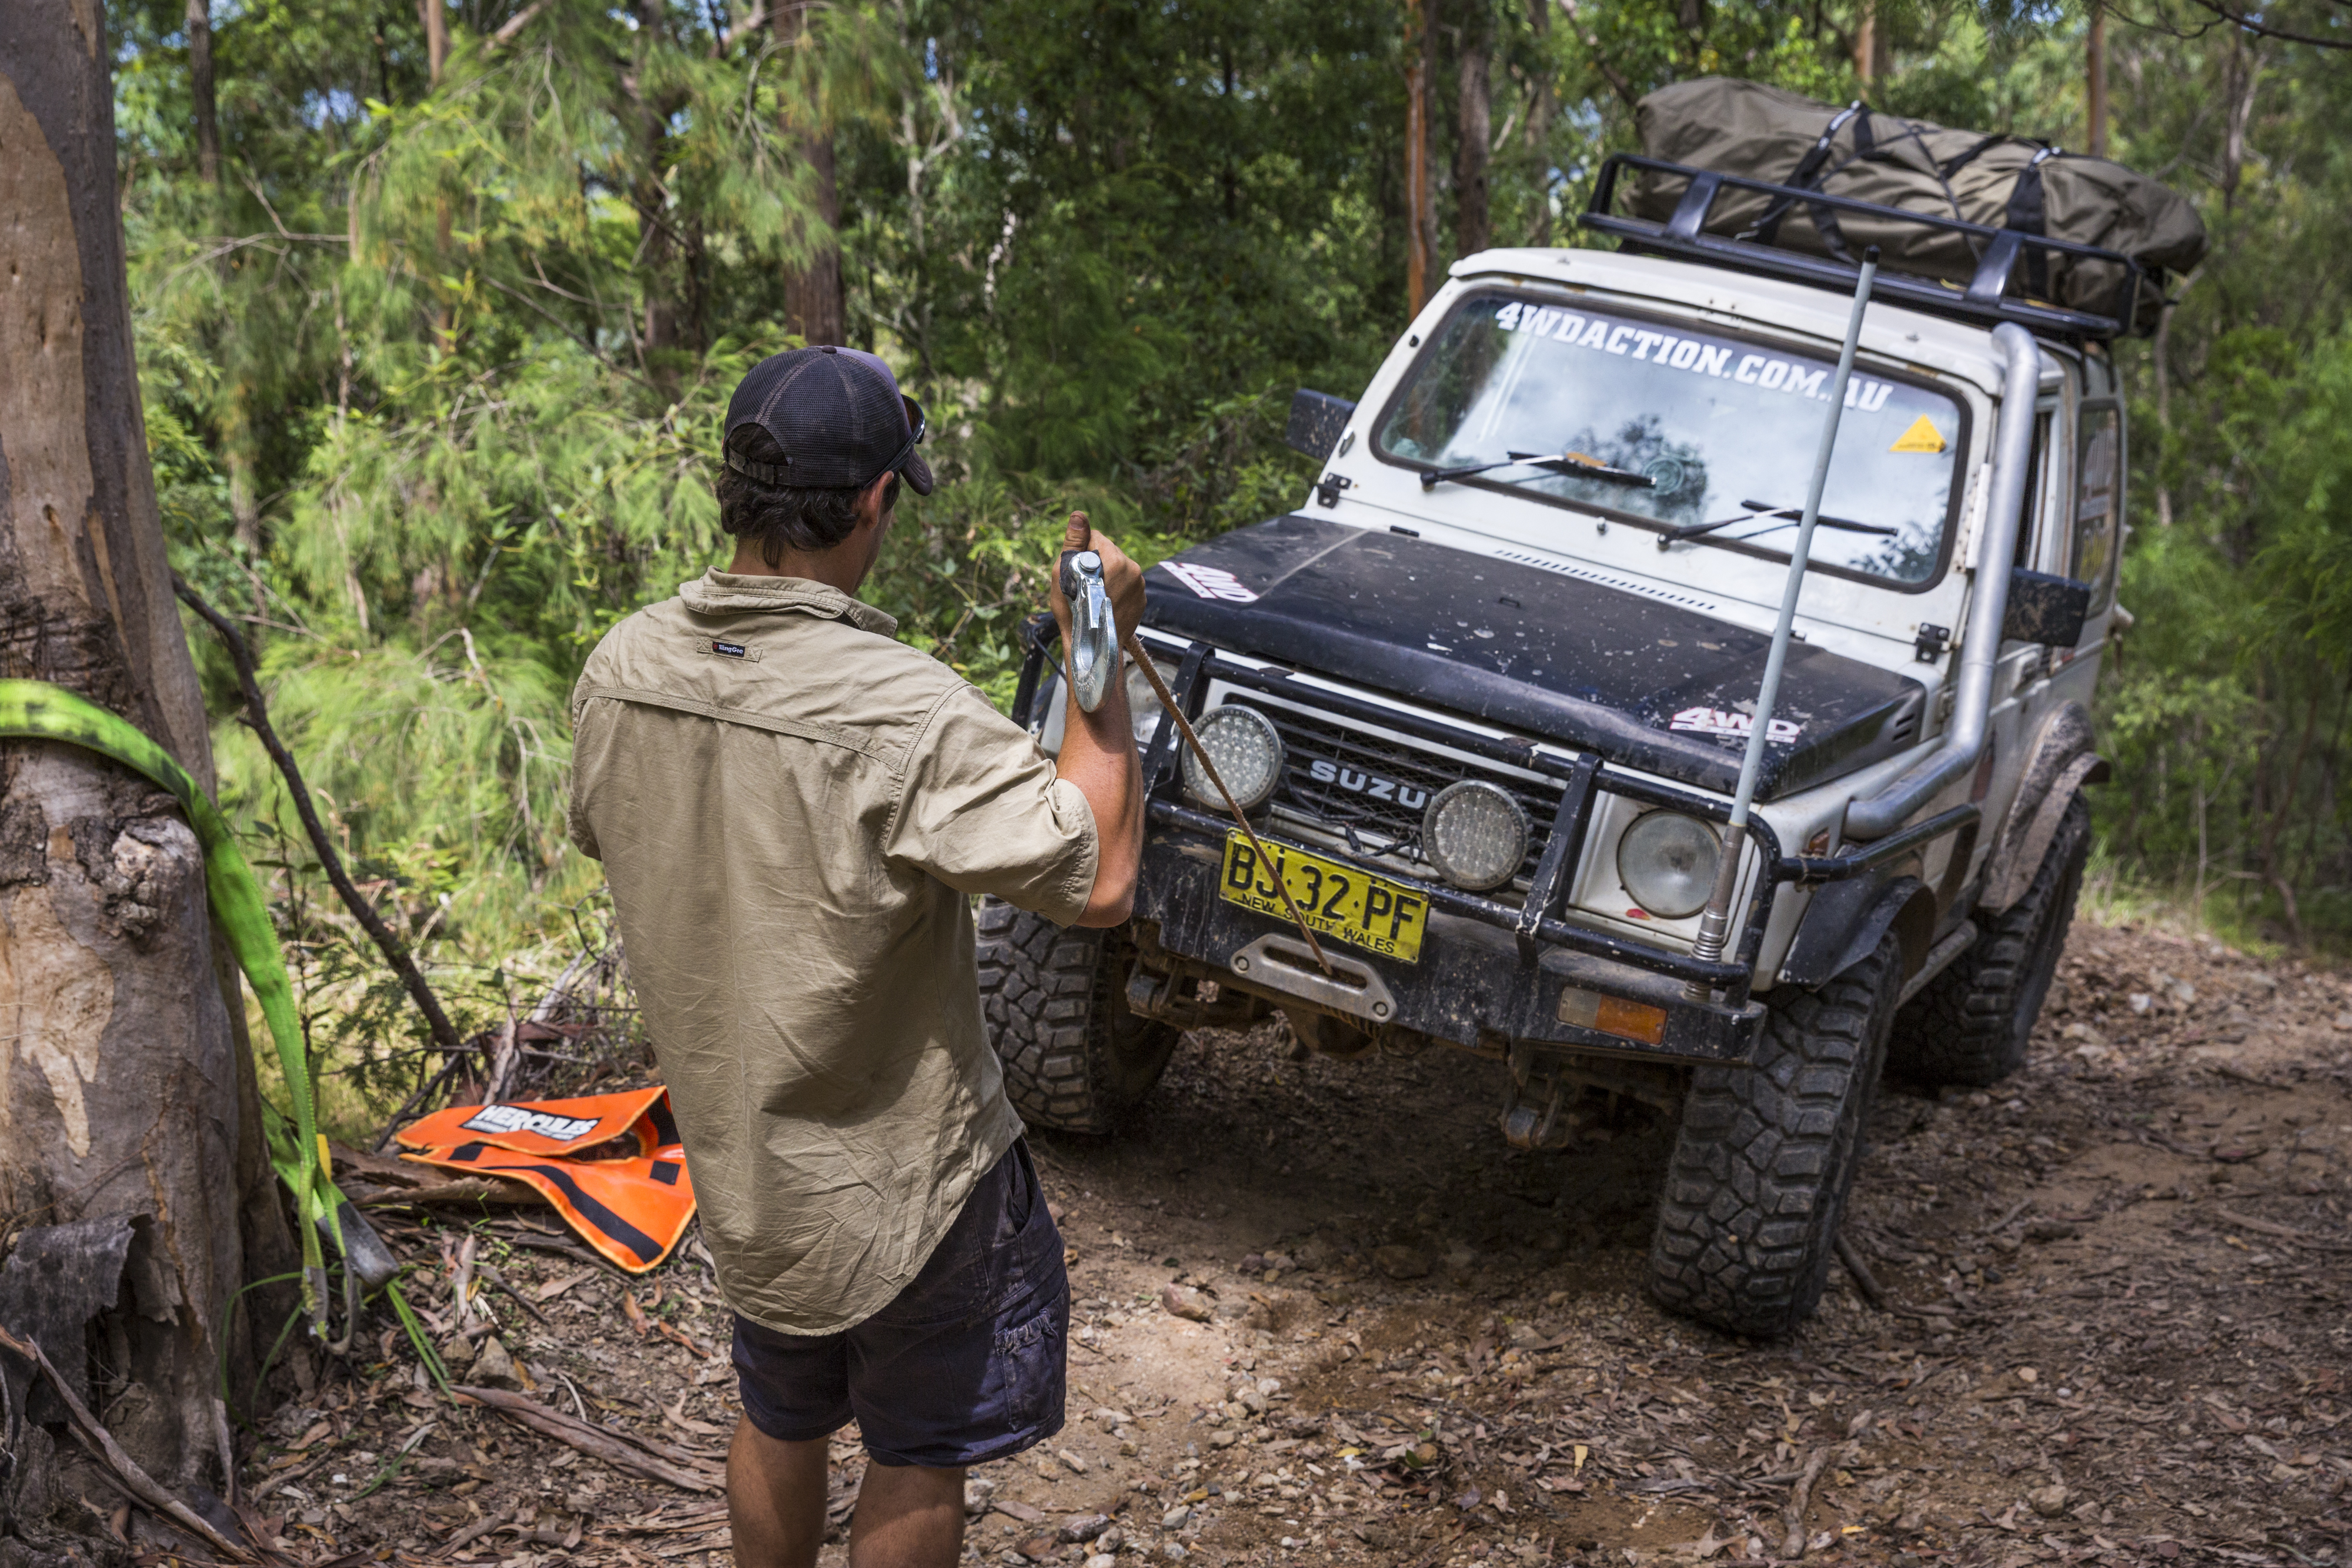 5 Best Bits of gear for your new 4WD! - image 160304-DVD-252-Day-1-142 on https://www.4wdsupacentre.com.au/news